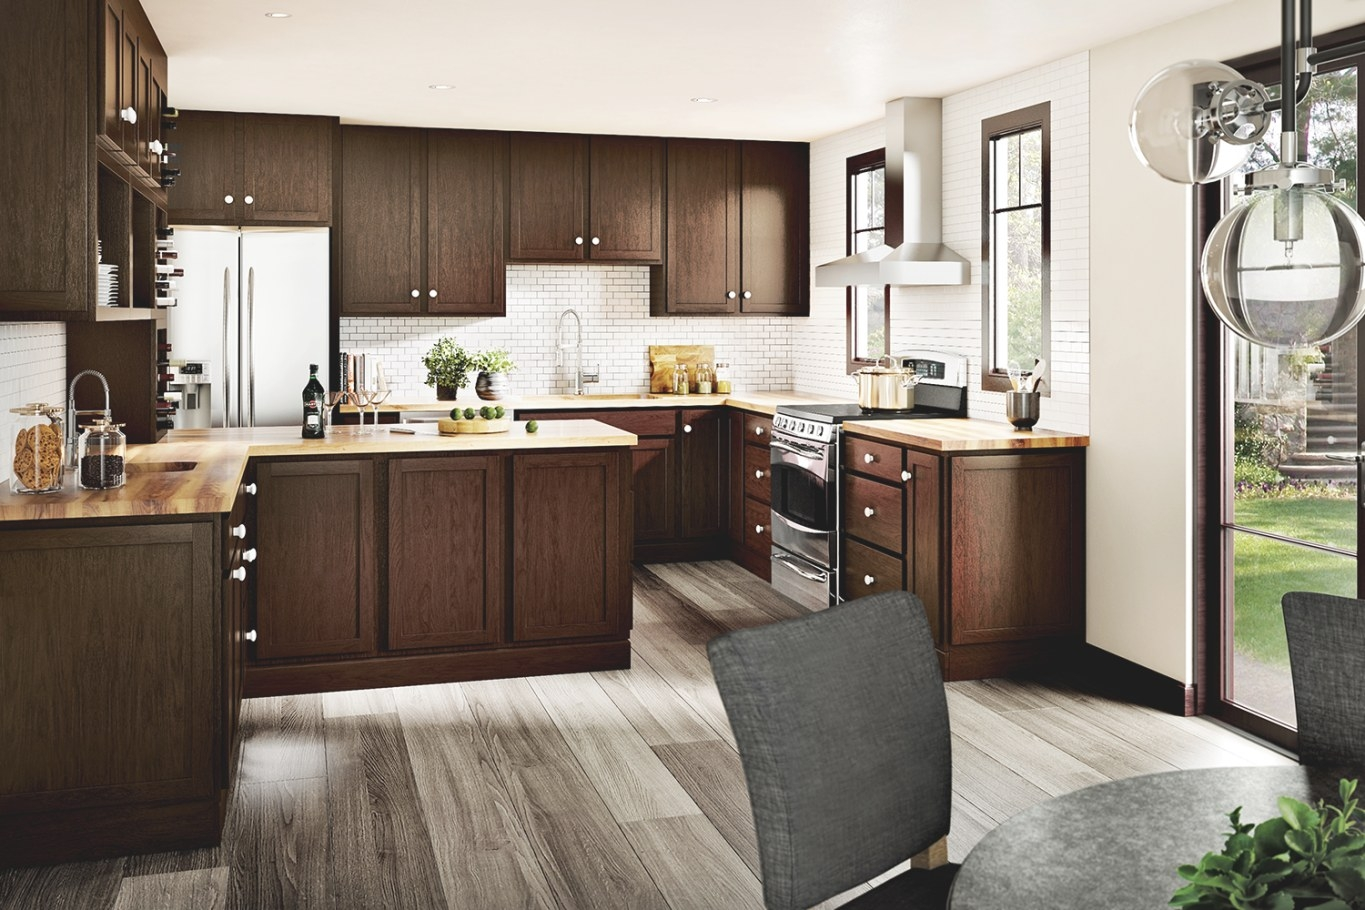 Kitchen Cabinets Company | Great American Kitchen & Bath pertaining to American Kitchen And Bath